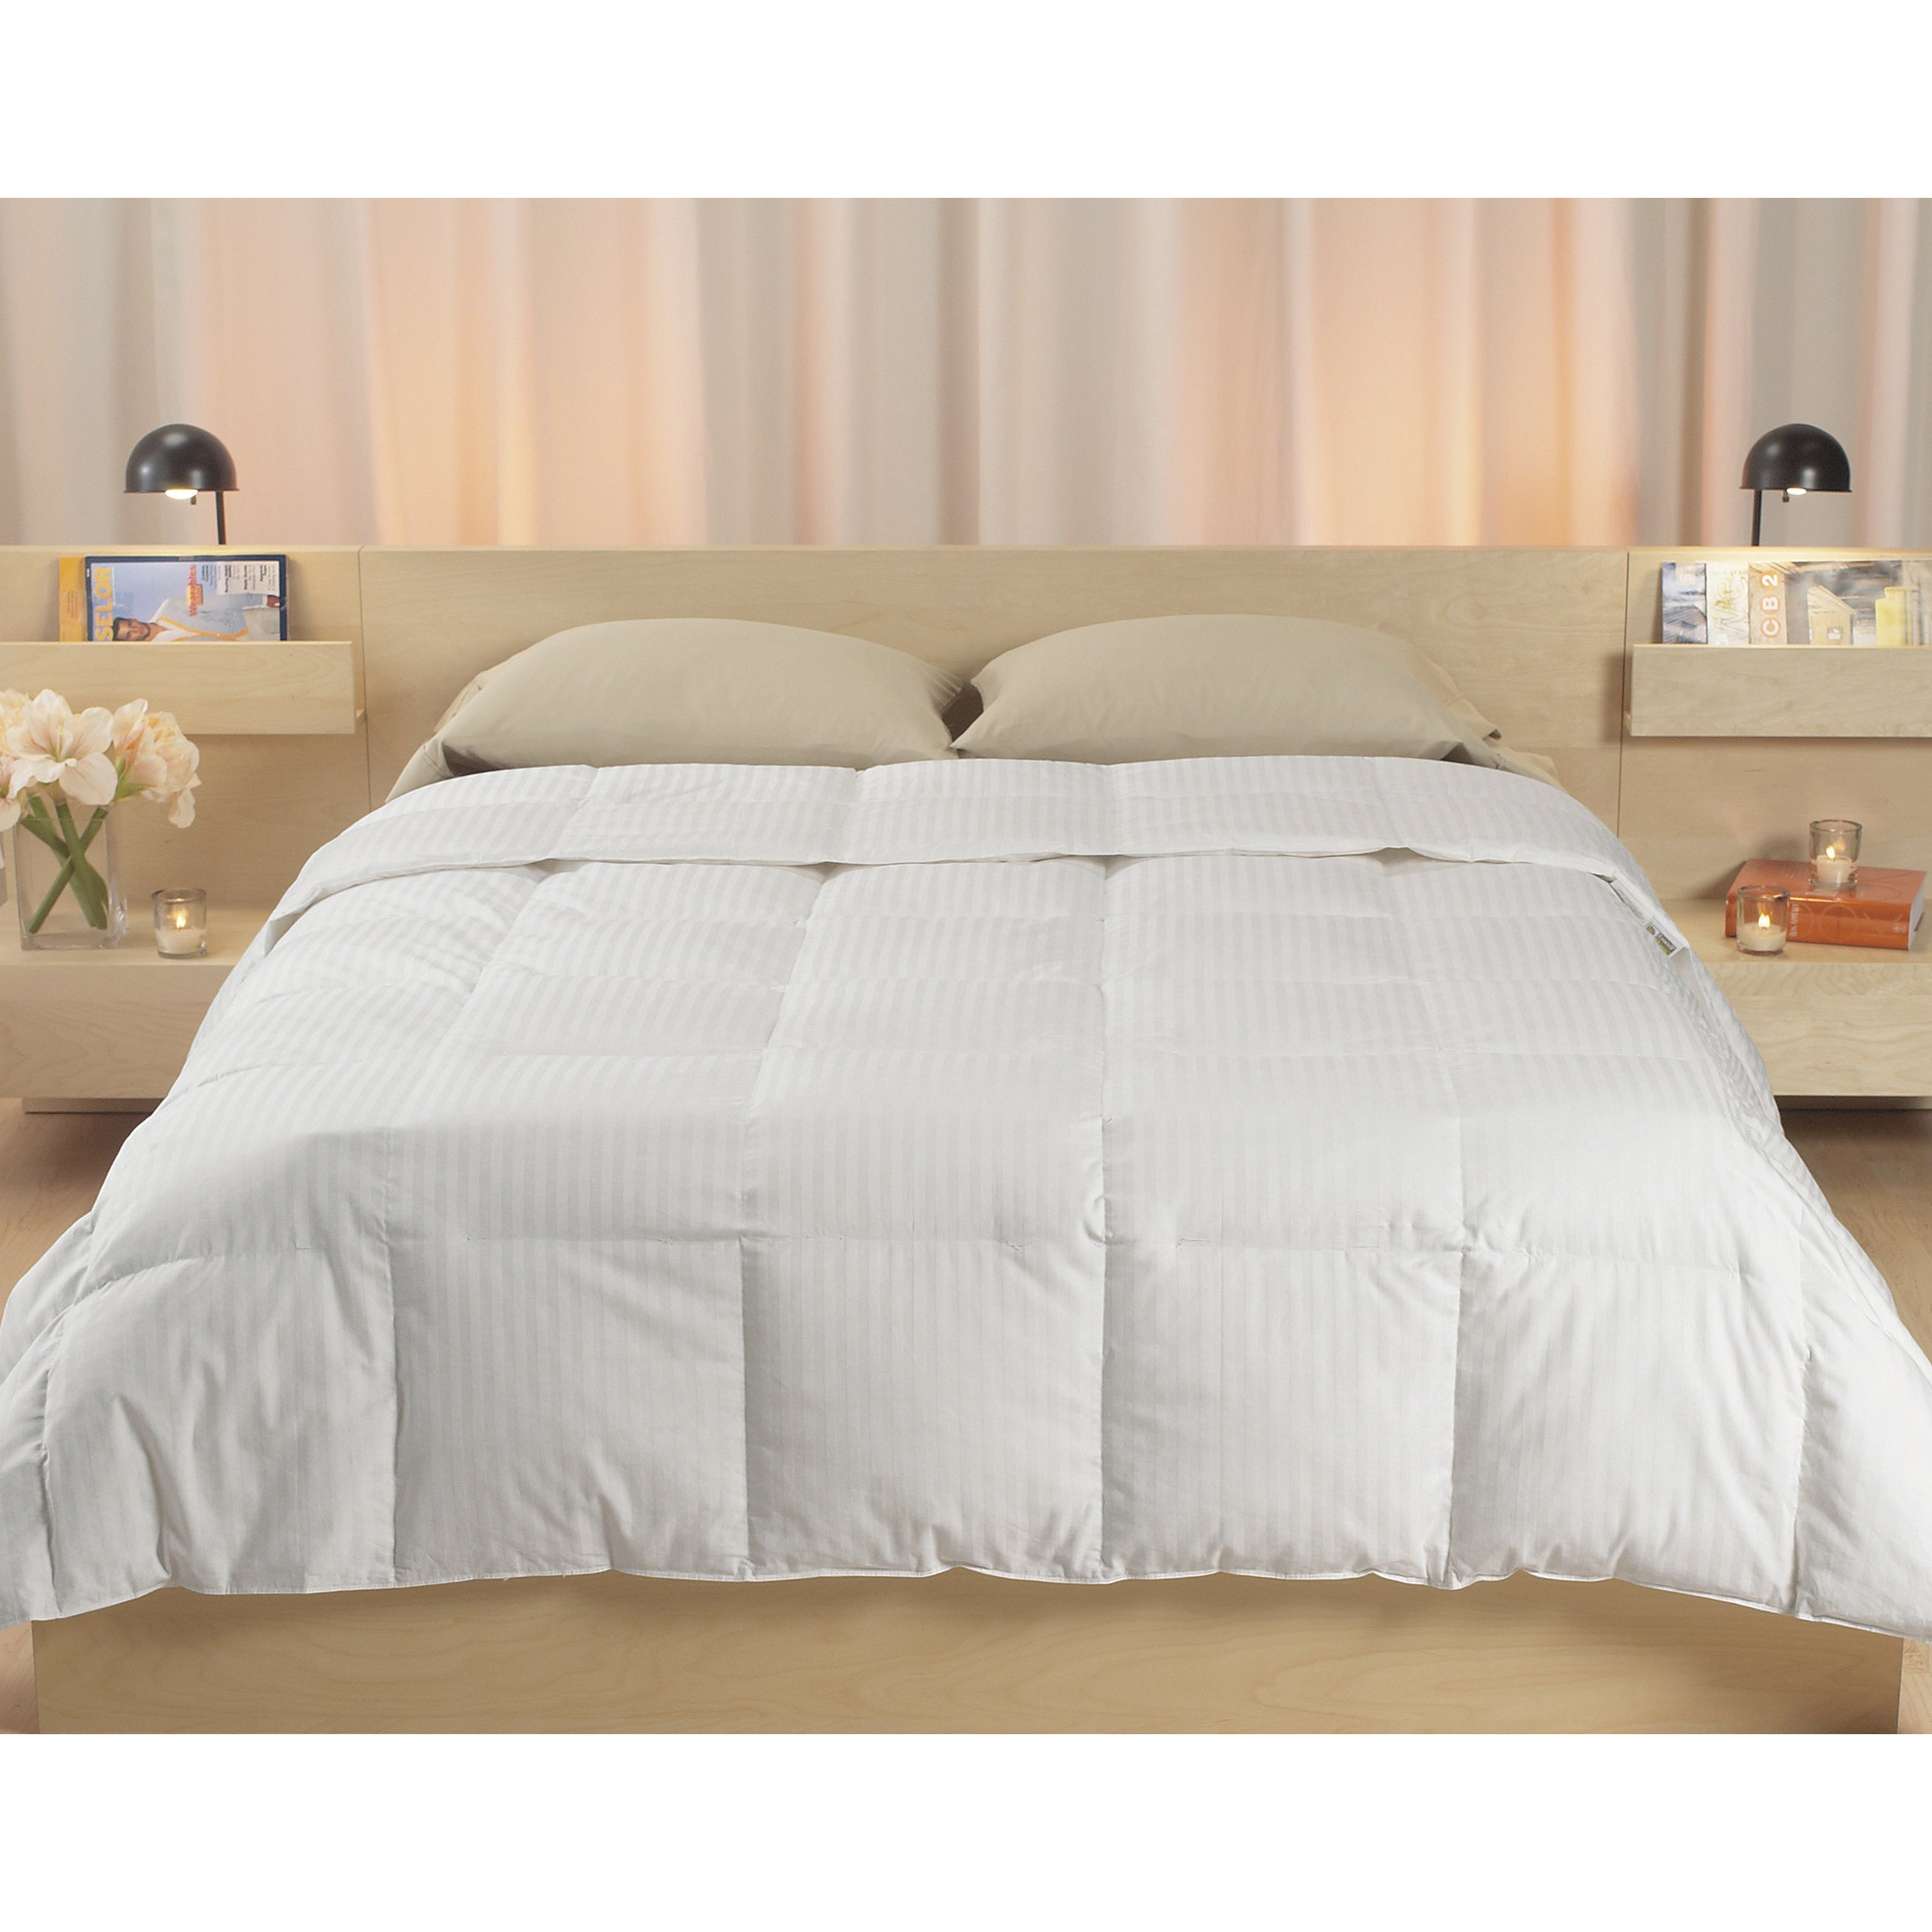 white goose buy alternative commerce color how x of organic art sunflower solid warm feather insert duvets summer dblc duvet top to polyester down climates a the fluffy and thick high comforters best set colored full comforter size bath quilt queen real simple for weight loft fluffiest